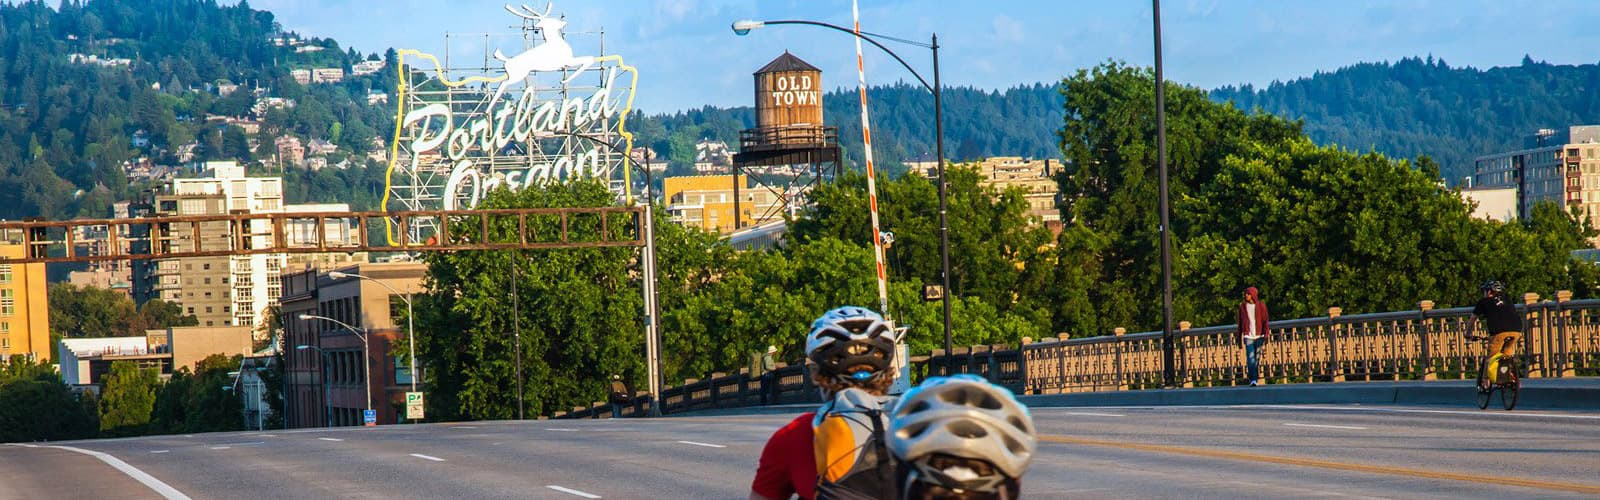 Bikers on the Burnside Bridge going toward the Portland sign